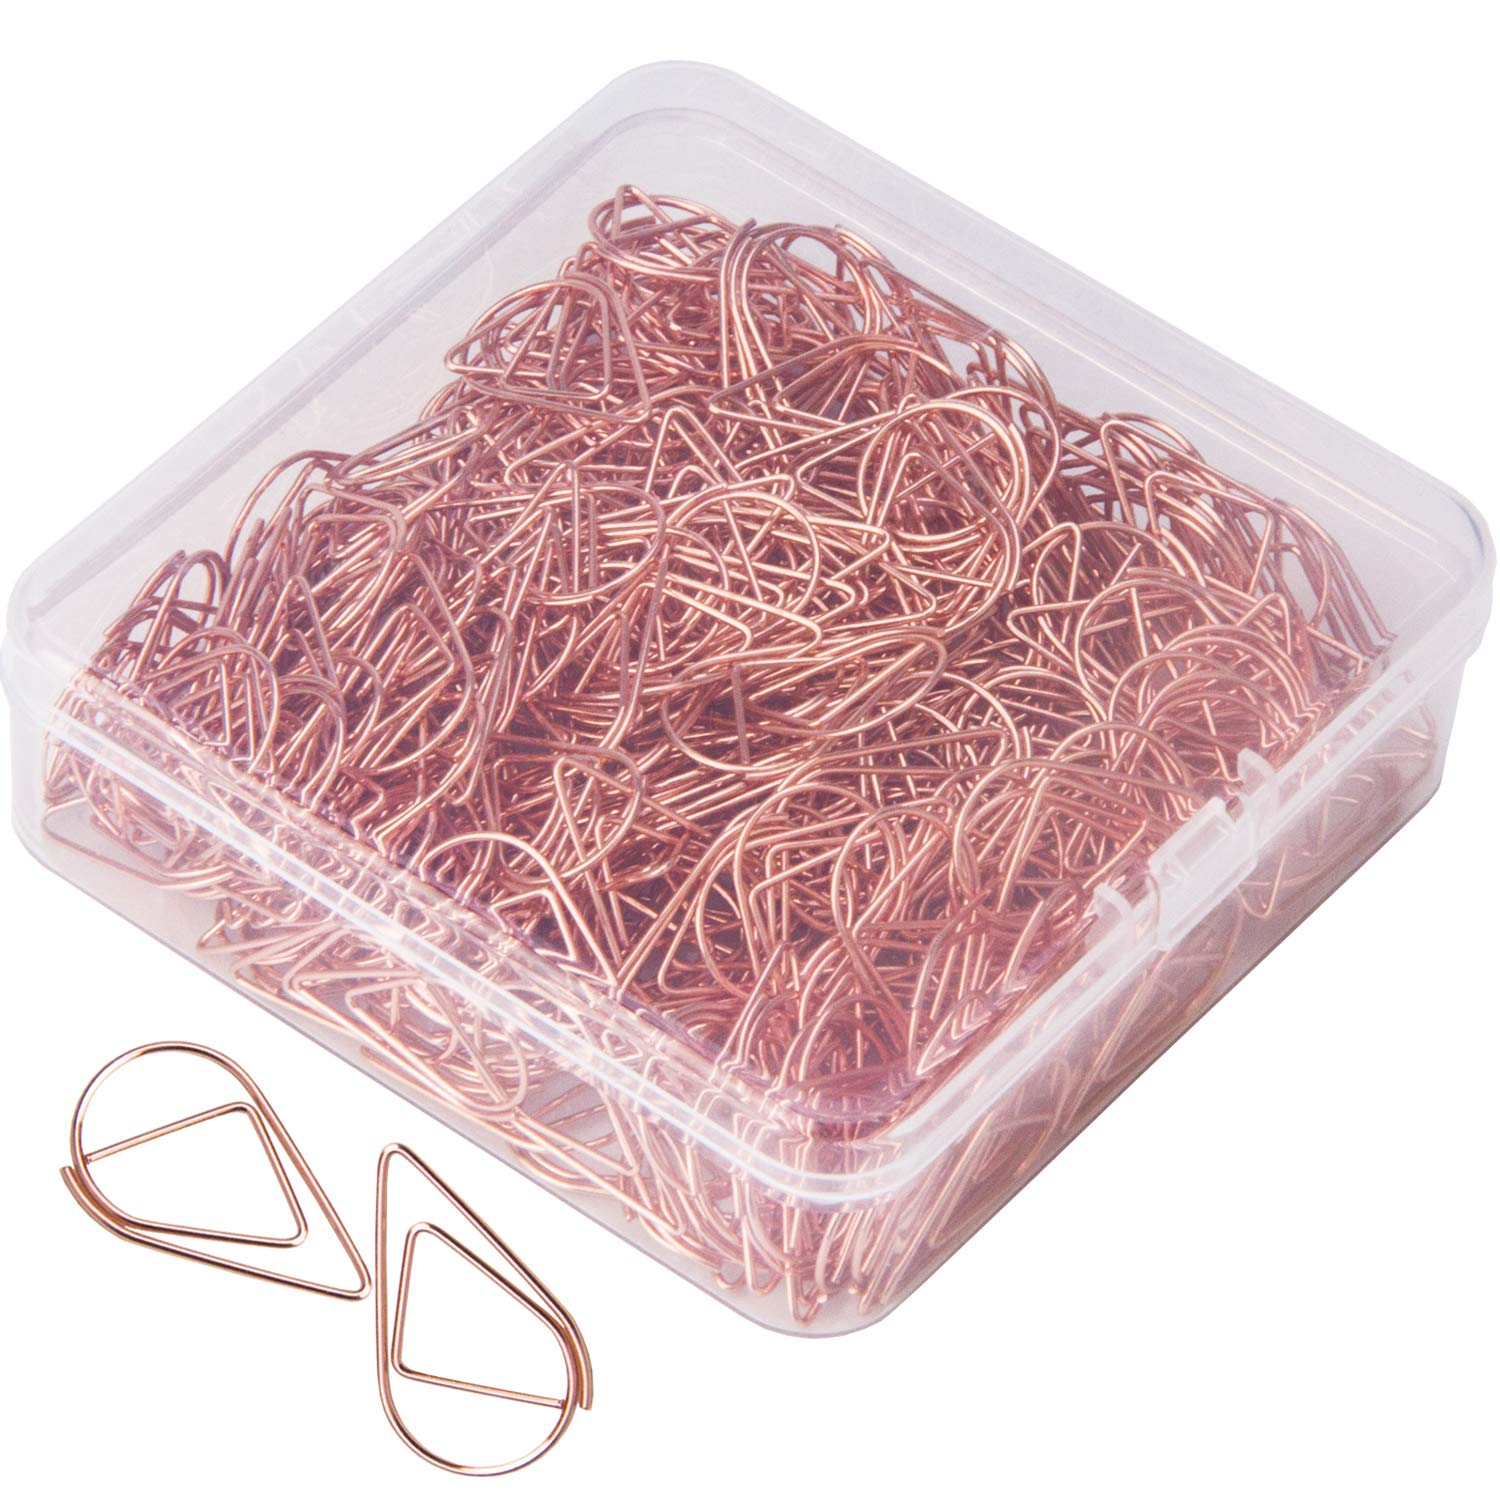 300 Premium Cute Paper Clips Rose Gold Smooth Stainless Steel Wire Small Paper Clips for Office Supplies Girls Kids School Students Paper Document Organizing with Storage Box (1 inch)